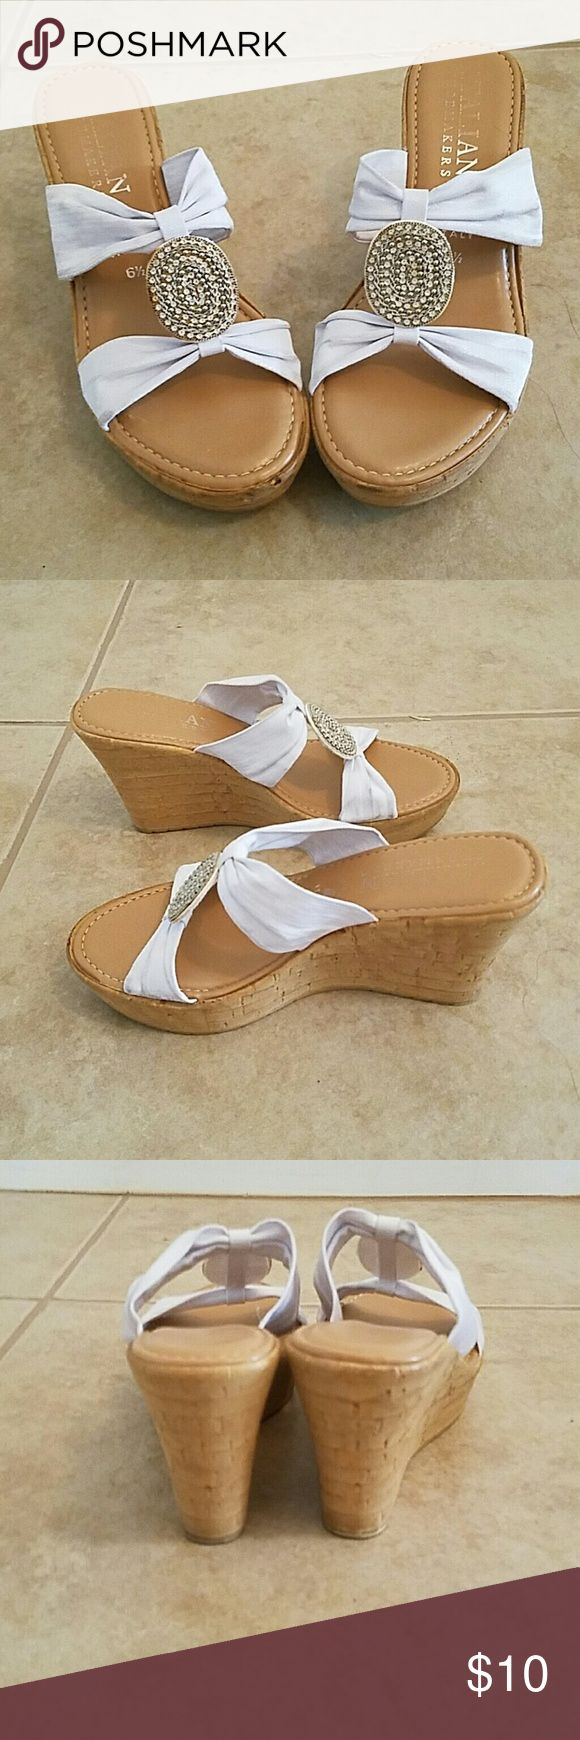 White wedge shoes Italian Shoemakers wedge shoe with cute beaded details on front Italian Shoemakers  Shoes Wedges